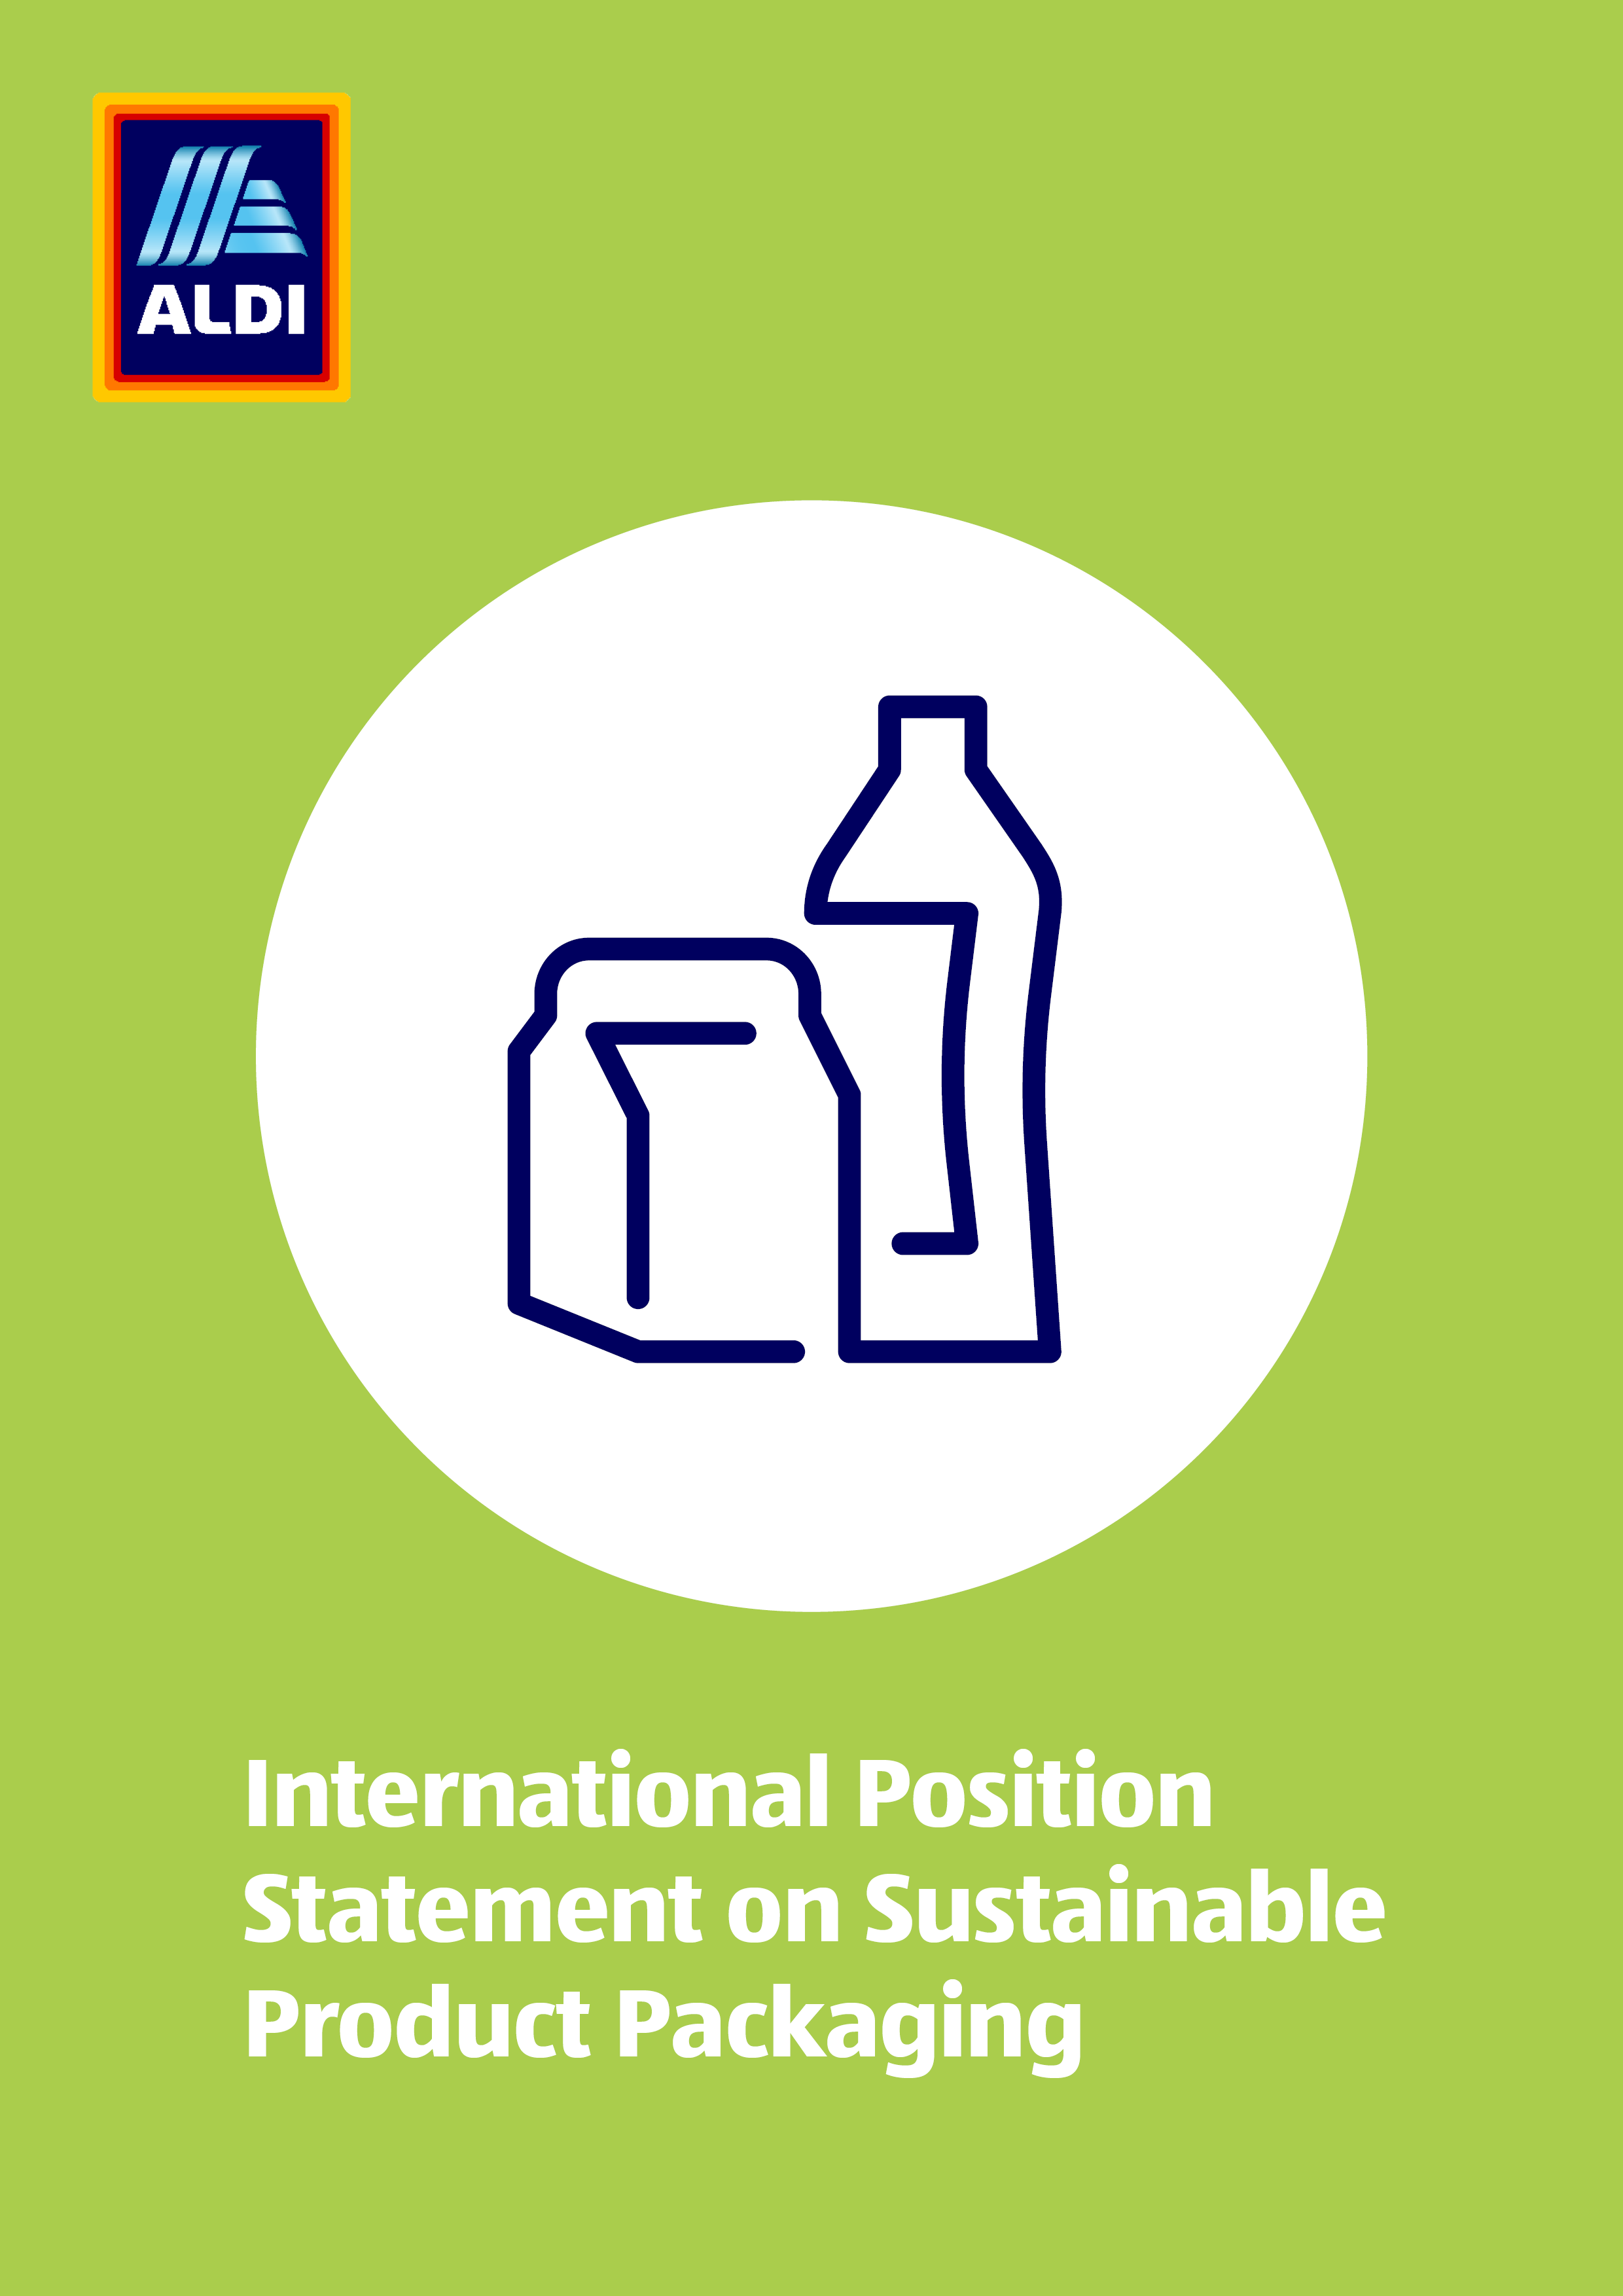 International Position Statement on Sustainable Product Packaging